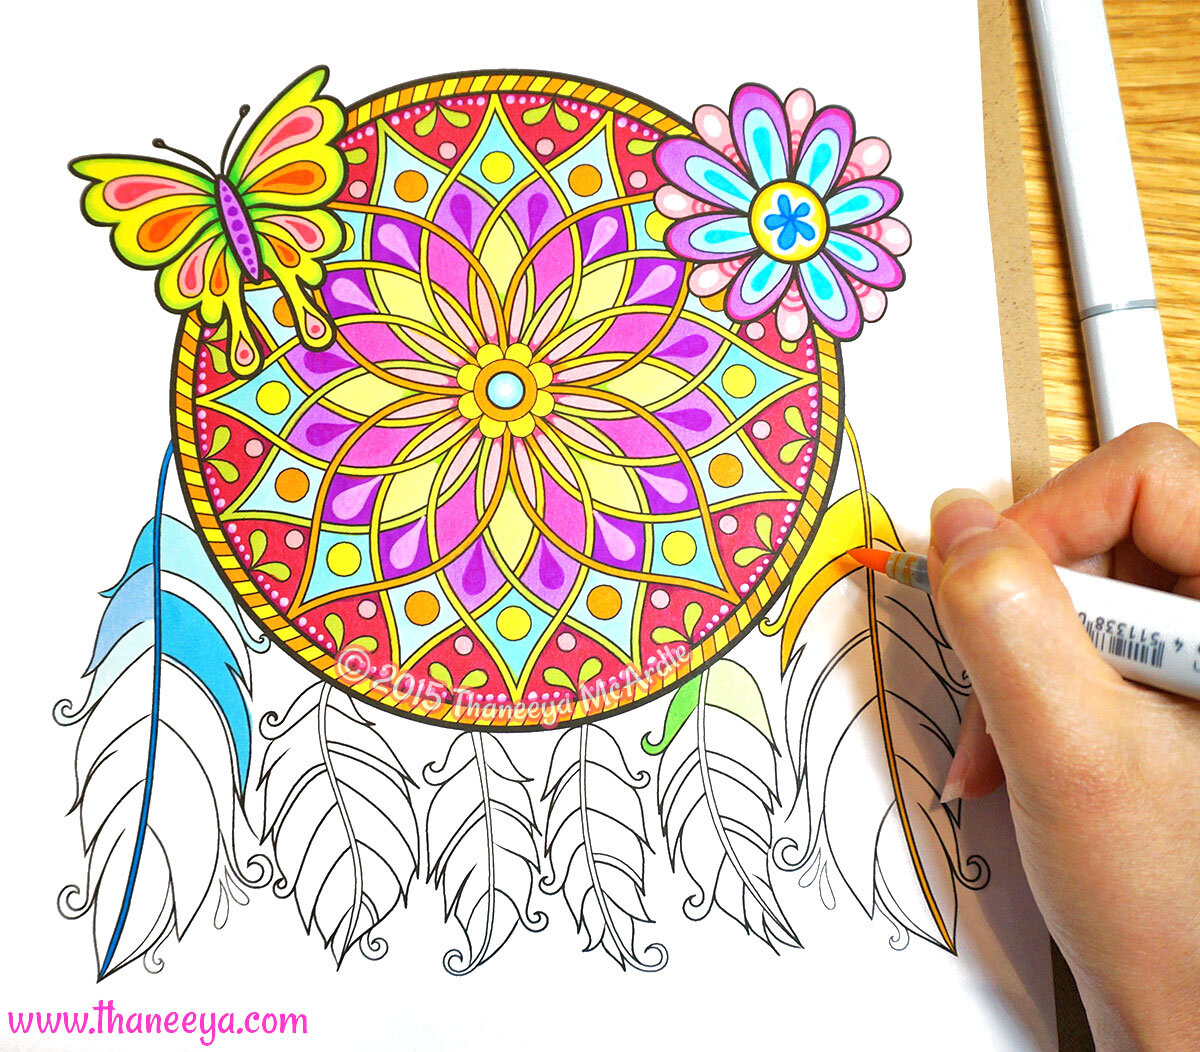 Coloring a dreamcatcher coloring page from my  Free Spirit coloring book  with Copic Sketch Markers